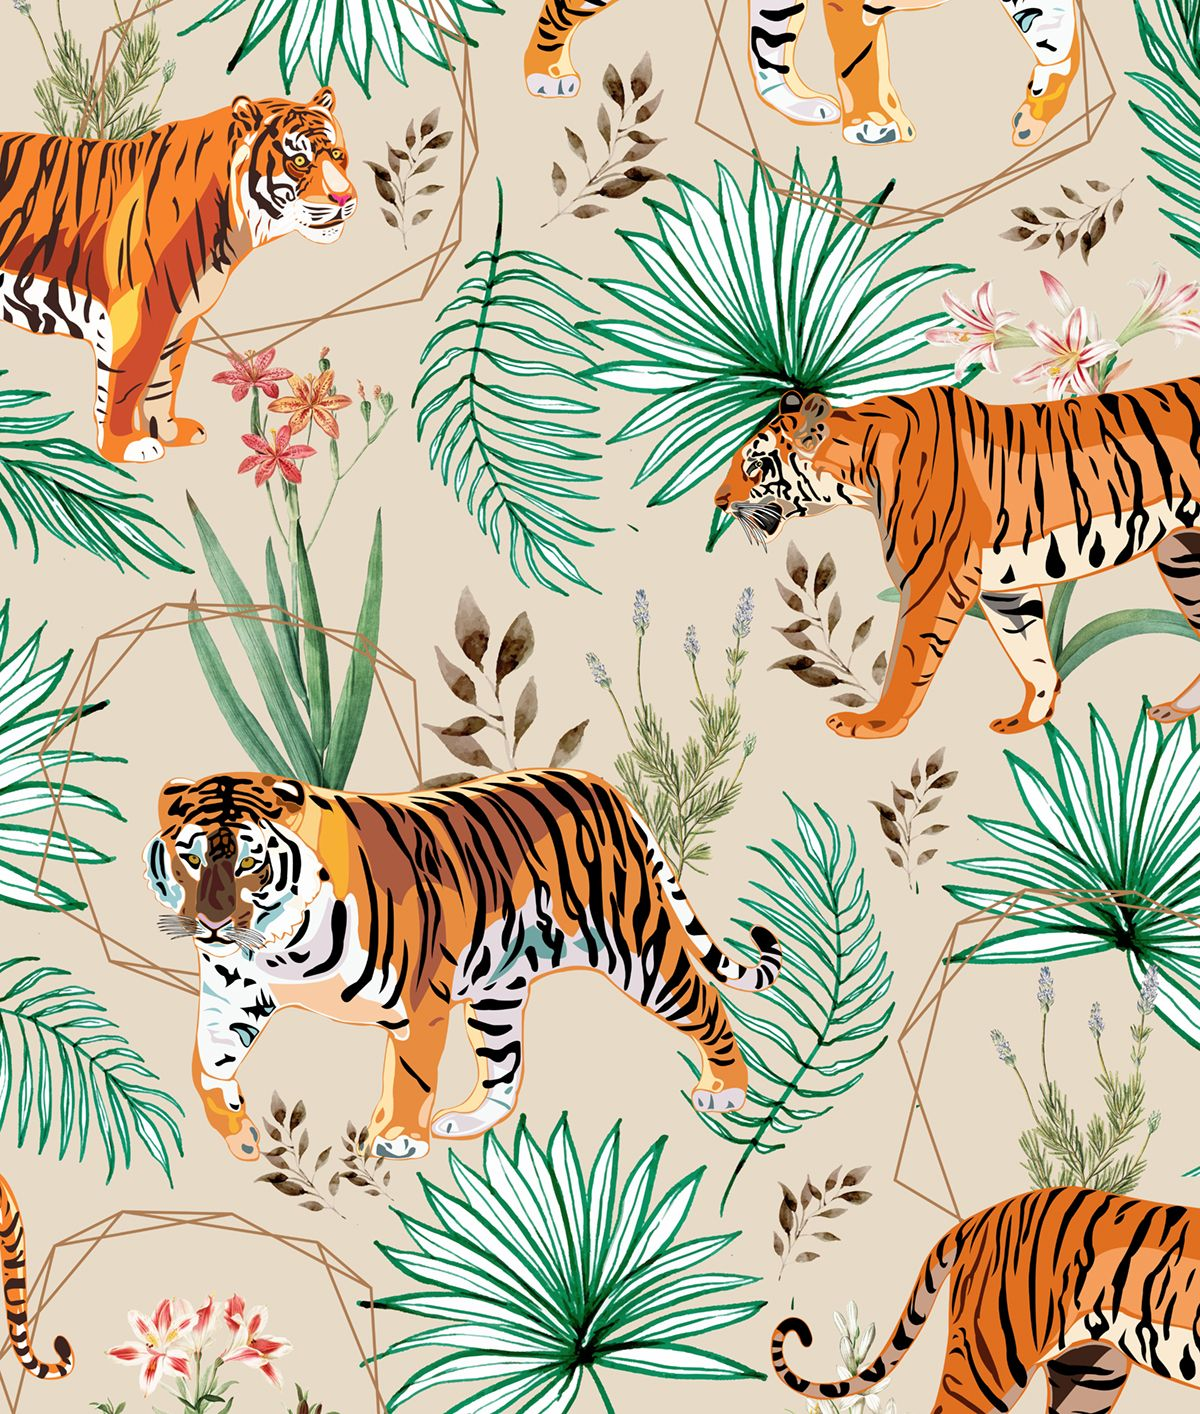 Tropical Tigers Art Print By 83 Oranges Tigers Illustration